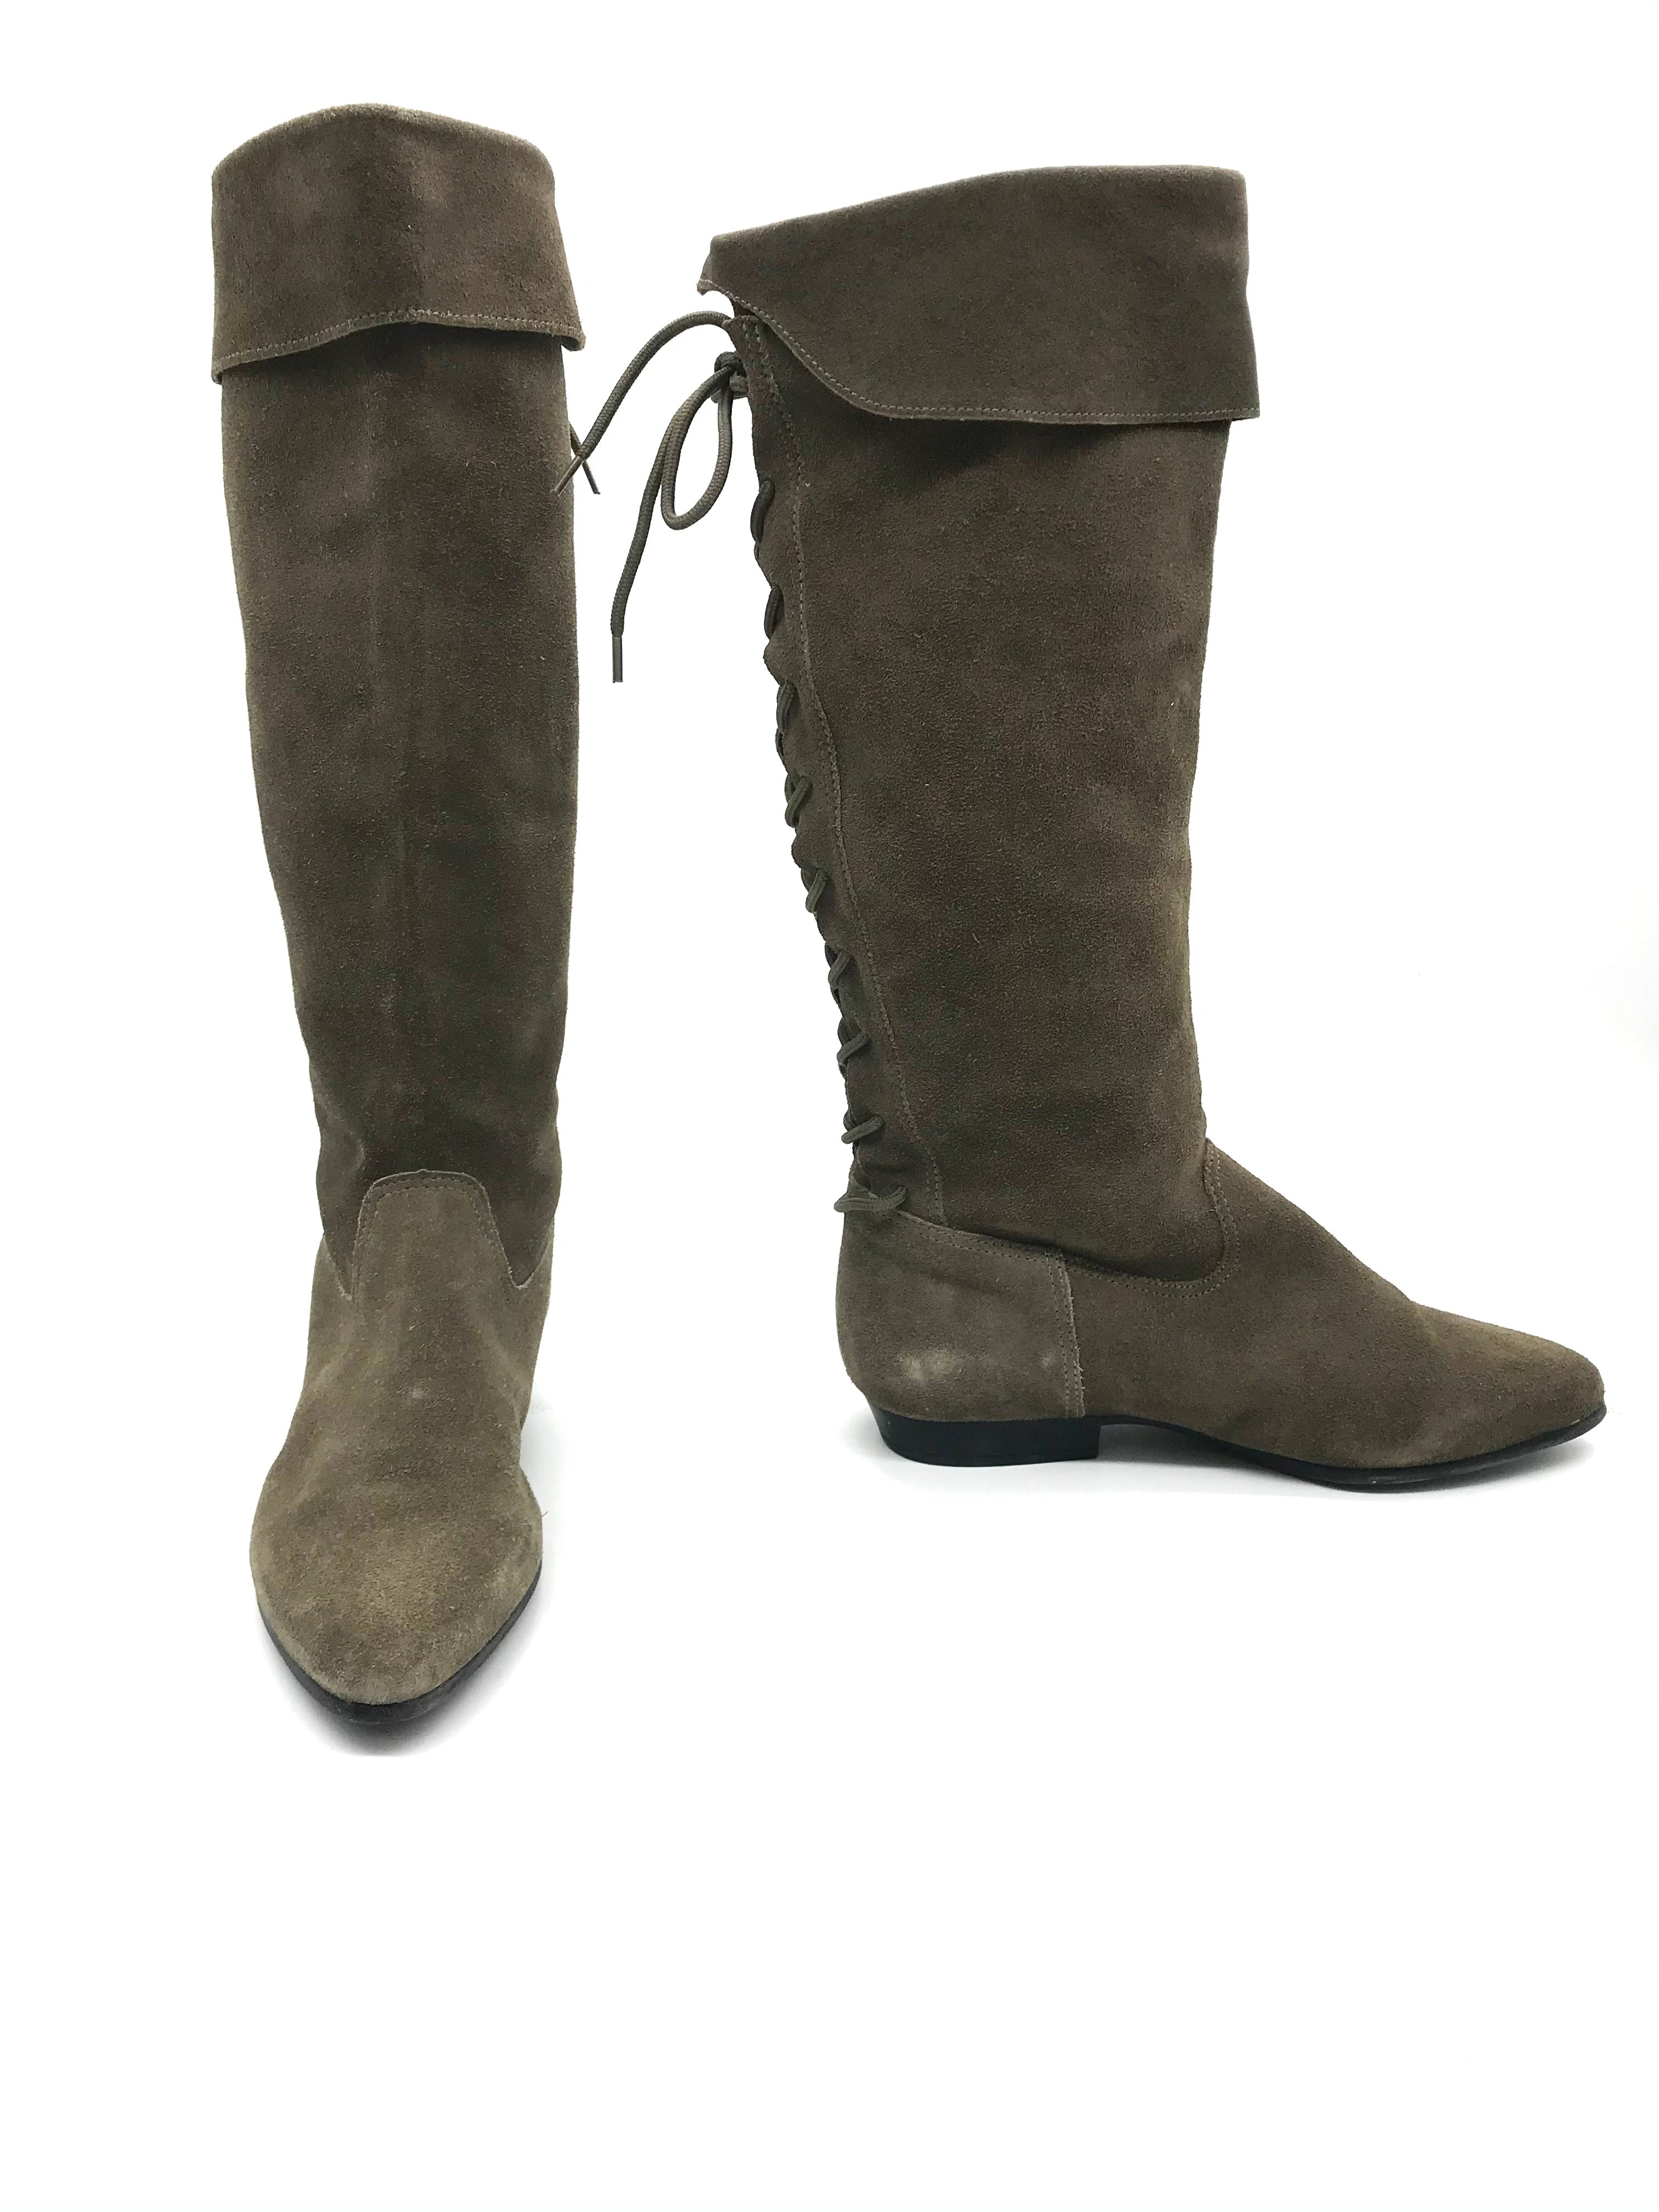 Primary Photo - BRAND: ALDO <BR>STYLE: BOOTS KNEE <BR>COLOR: TAN <BR>SIZE: 5 <BR>SKU: 262-26275-71909<BR><BR>MAY HAVE SOME SLIGHT SIGNS OF WEAR